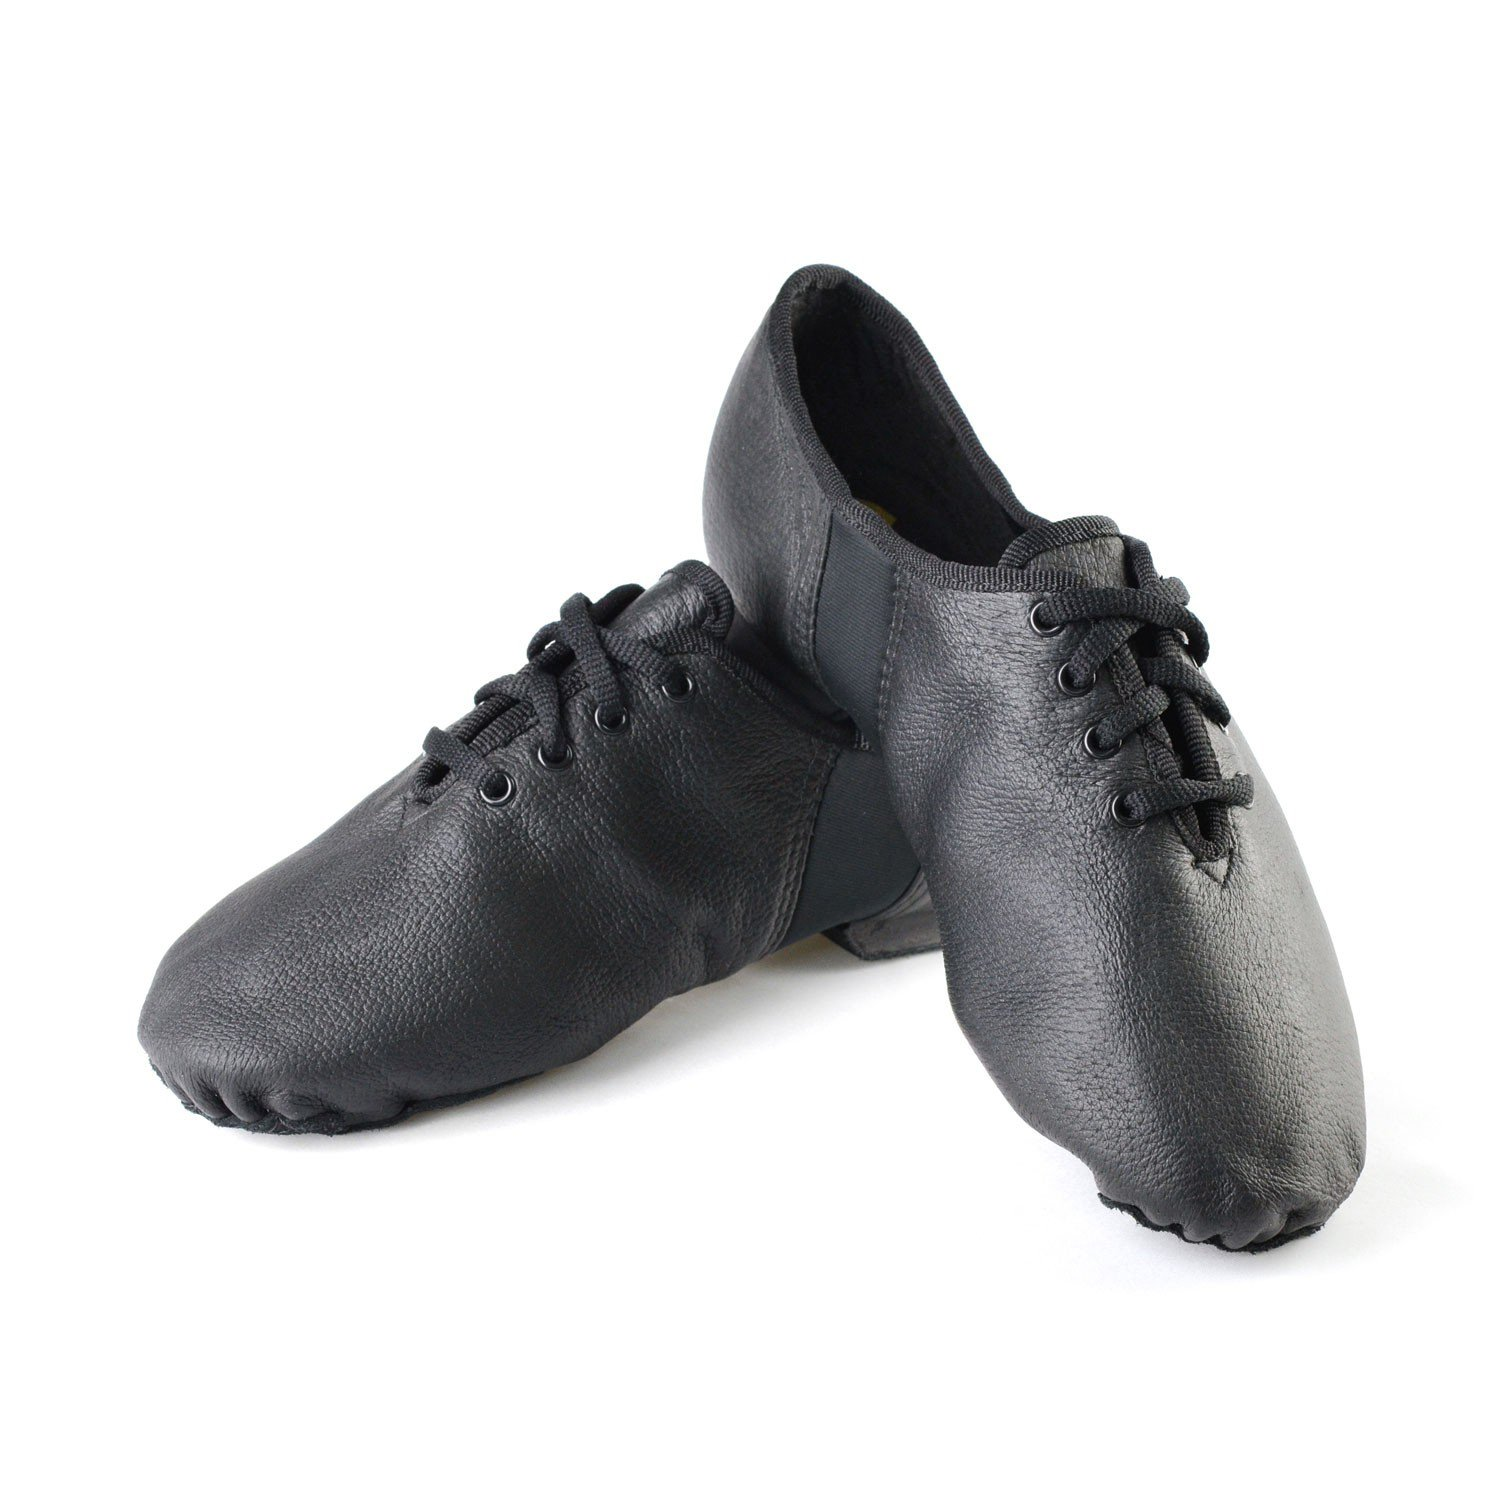 Sansha Js1lco Adult Tivoli Lace-up Jazz Shoe